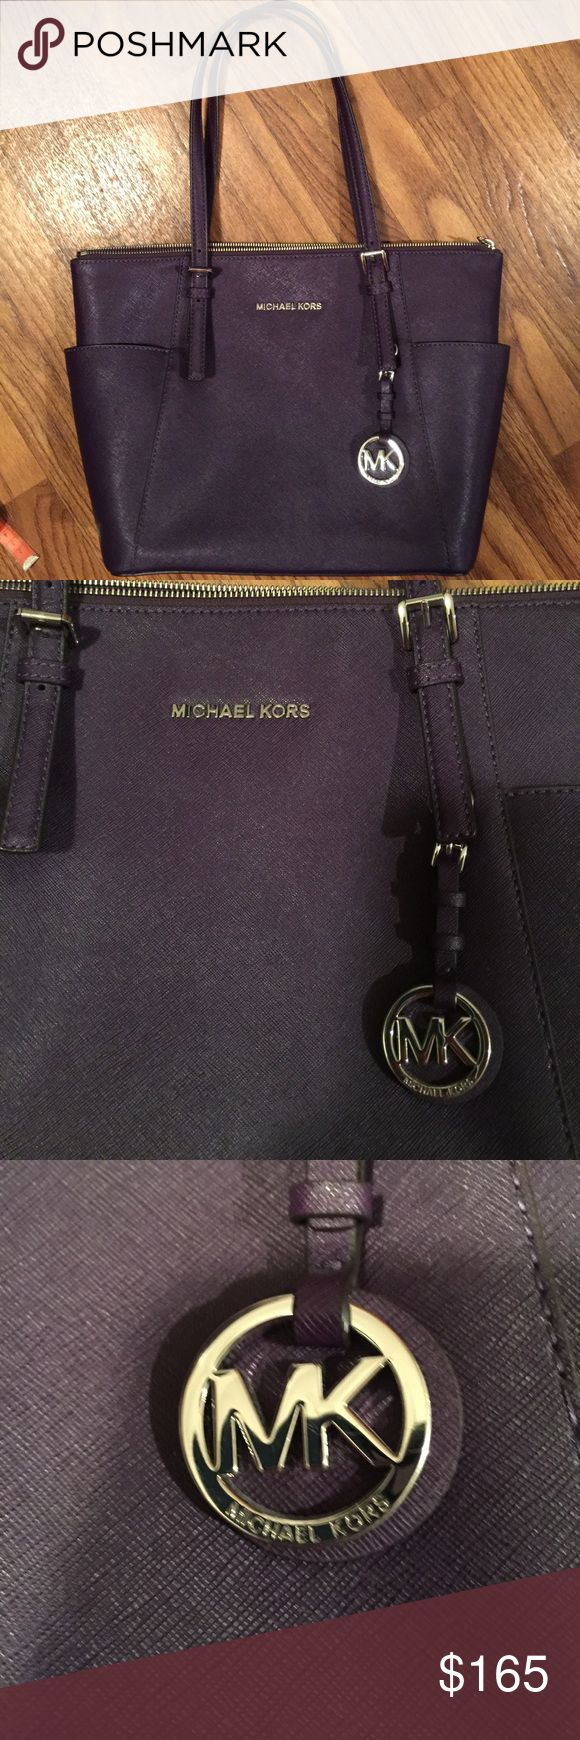 Michael Kors Jet Set Purple Tote ~ Great Bag!!! Great Jet Set Purple Medium to Large Michael Kors Tote Handbag ~ Michael Kors Bags Totes